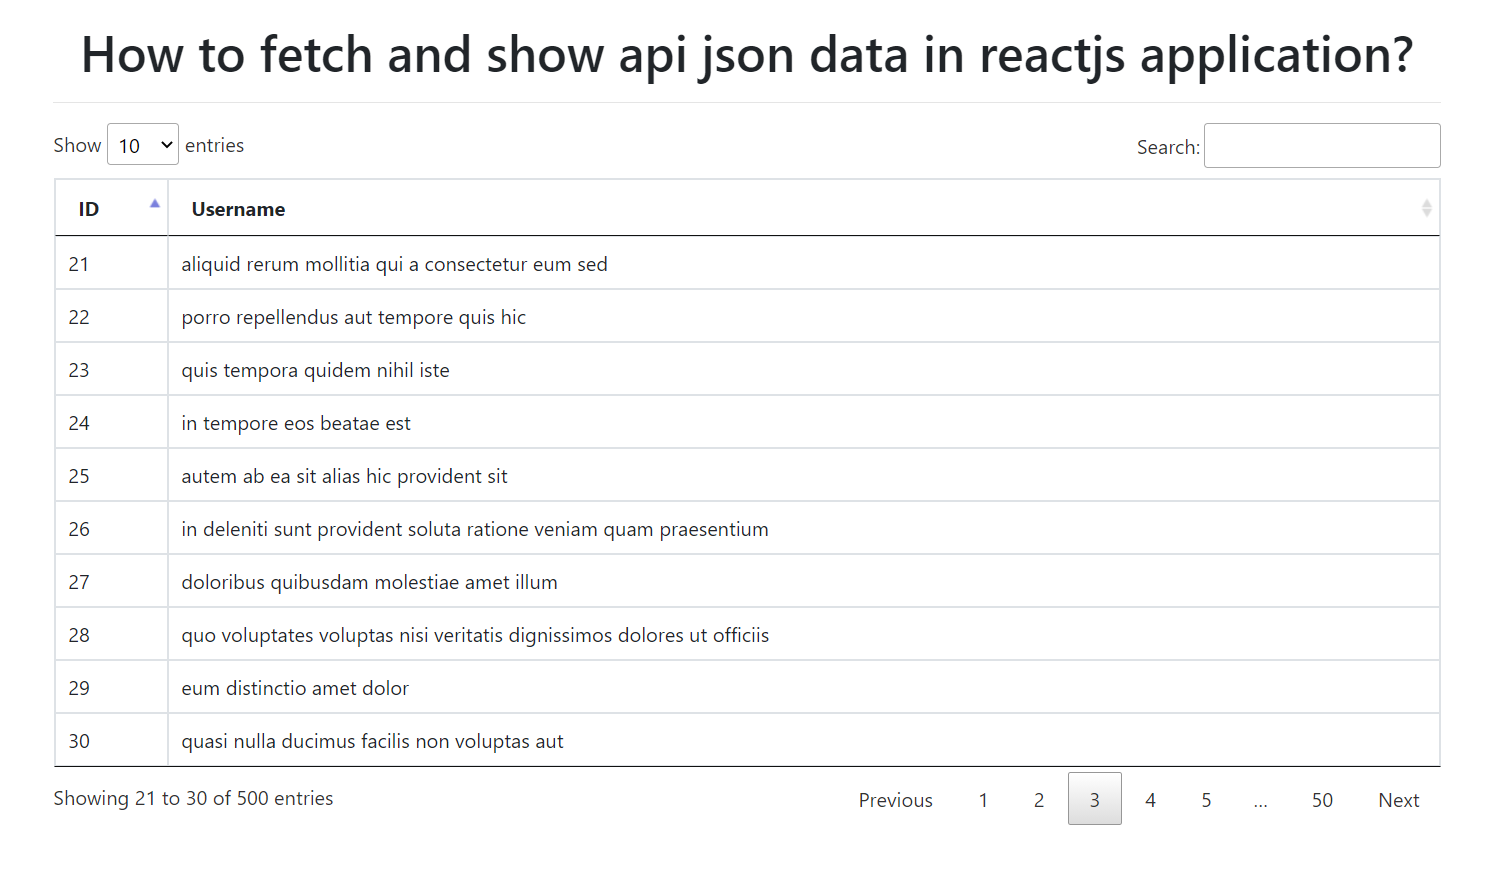 How to fetch and show api json data in reactjs application?